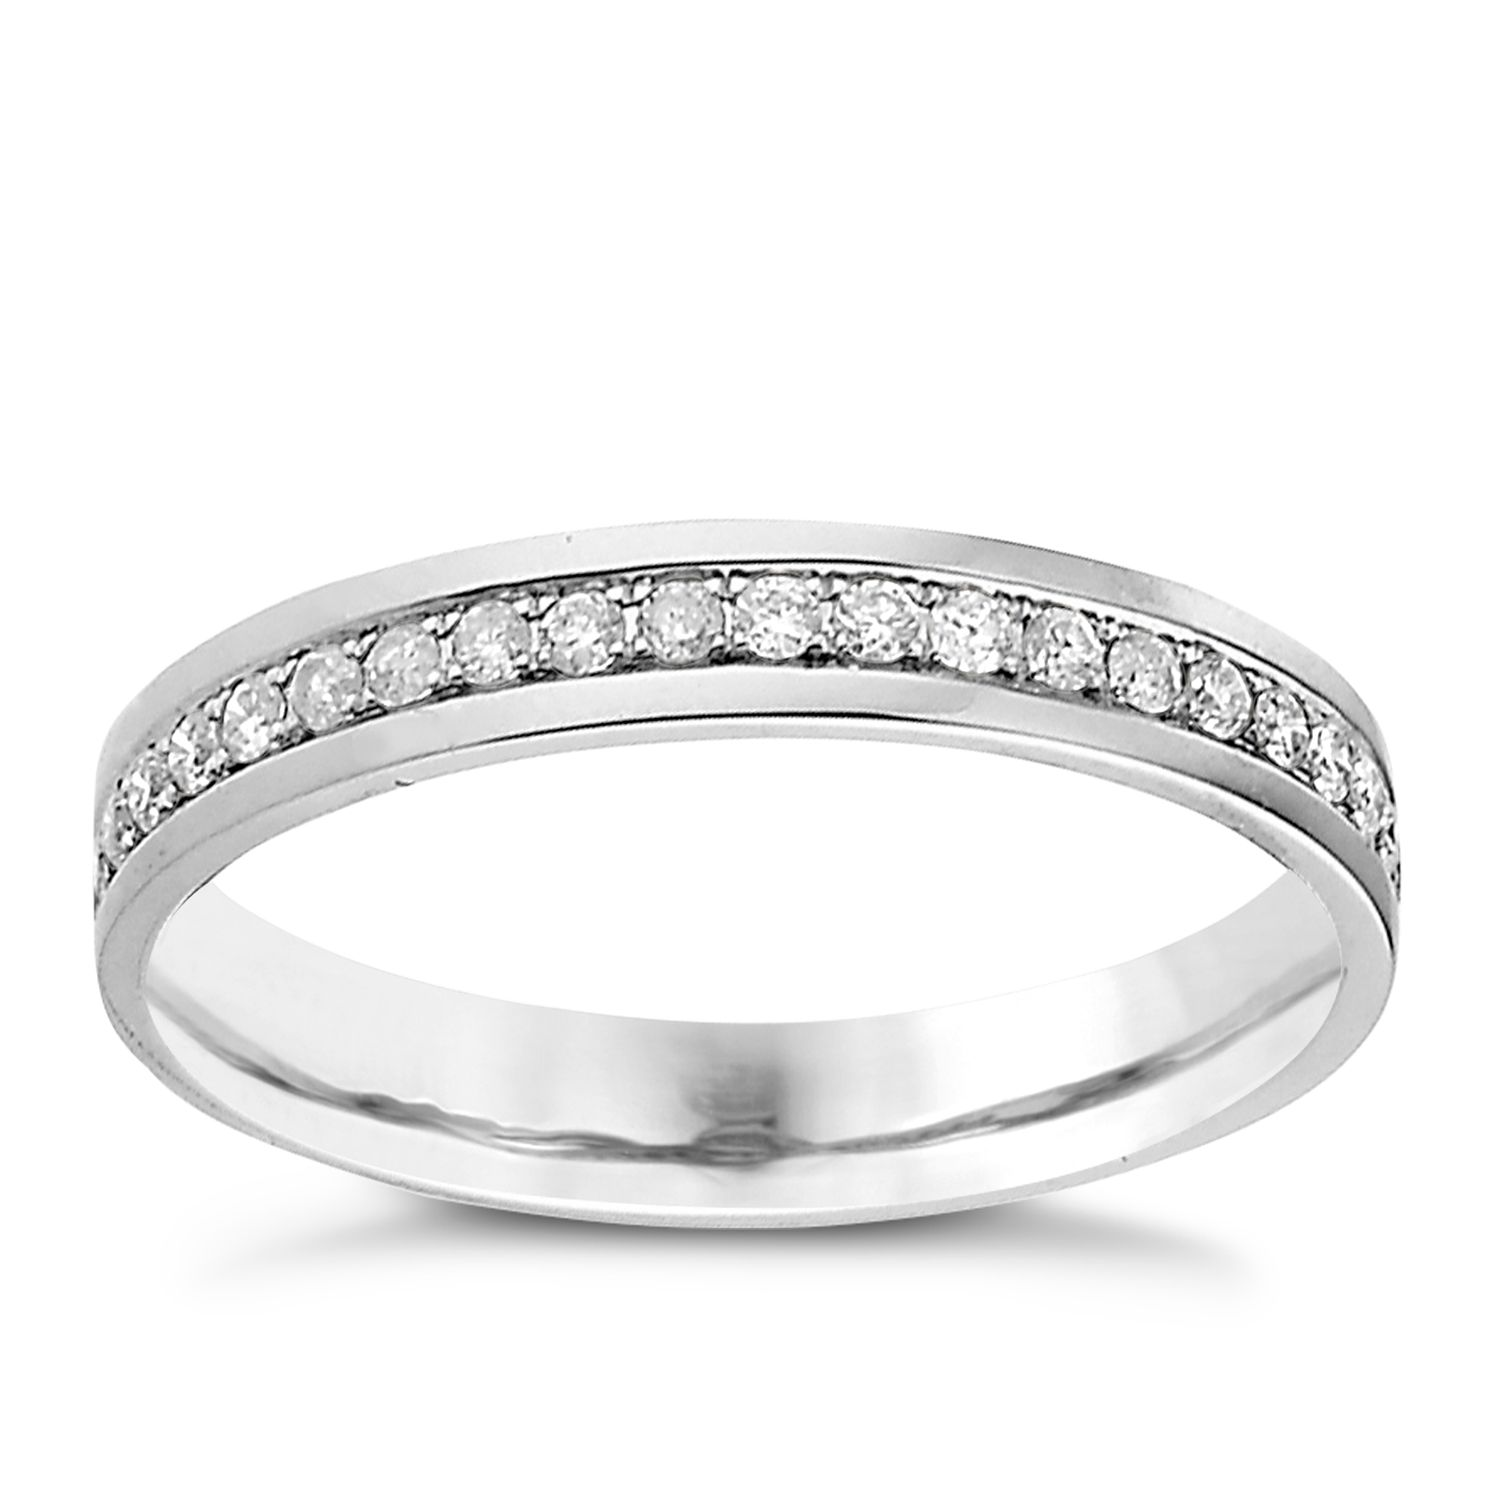 Palladium 950 Channel Set 0.25ct Diamond Wedding Ring - Product number 9201068